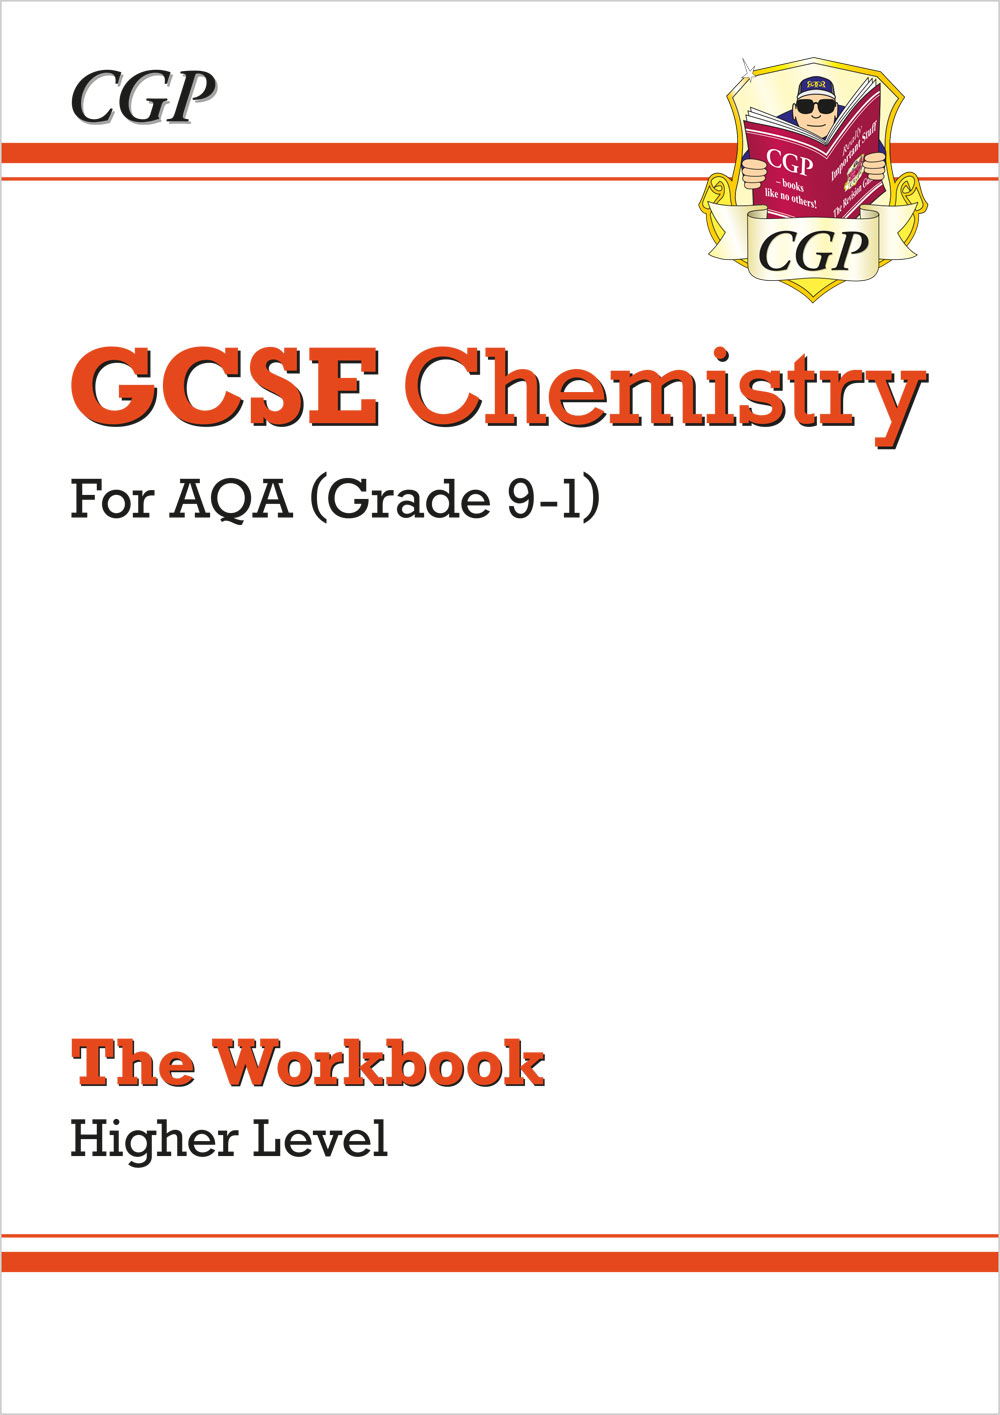 CAHW41 - Grade 9-1 GCSE Chemistry: AQA Workbook - Higher